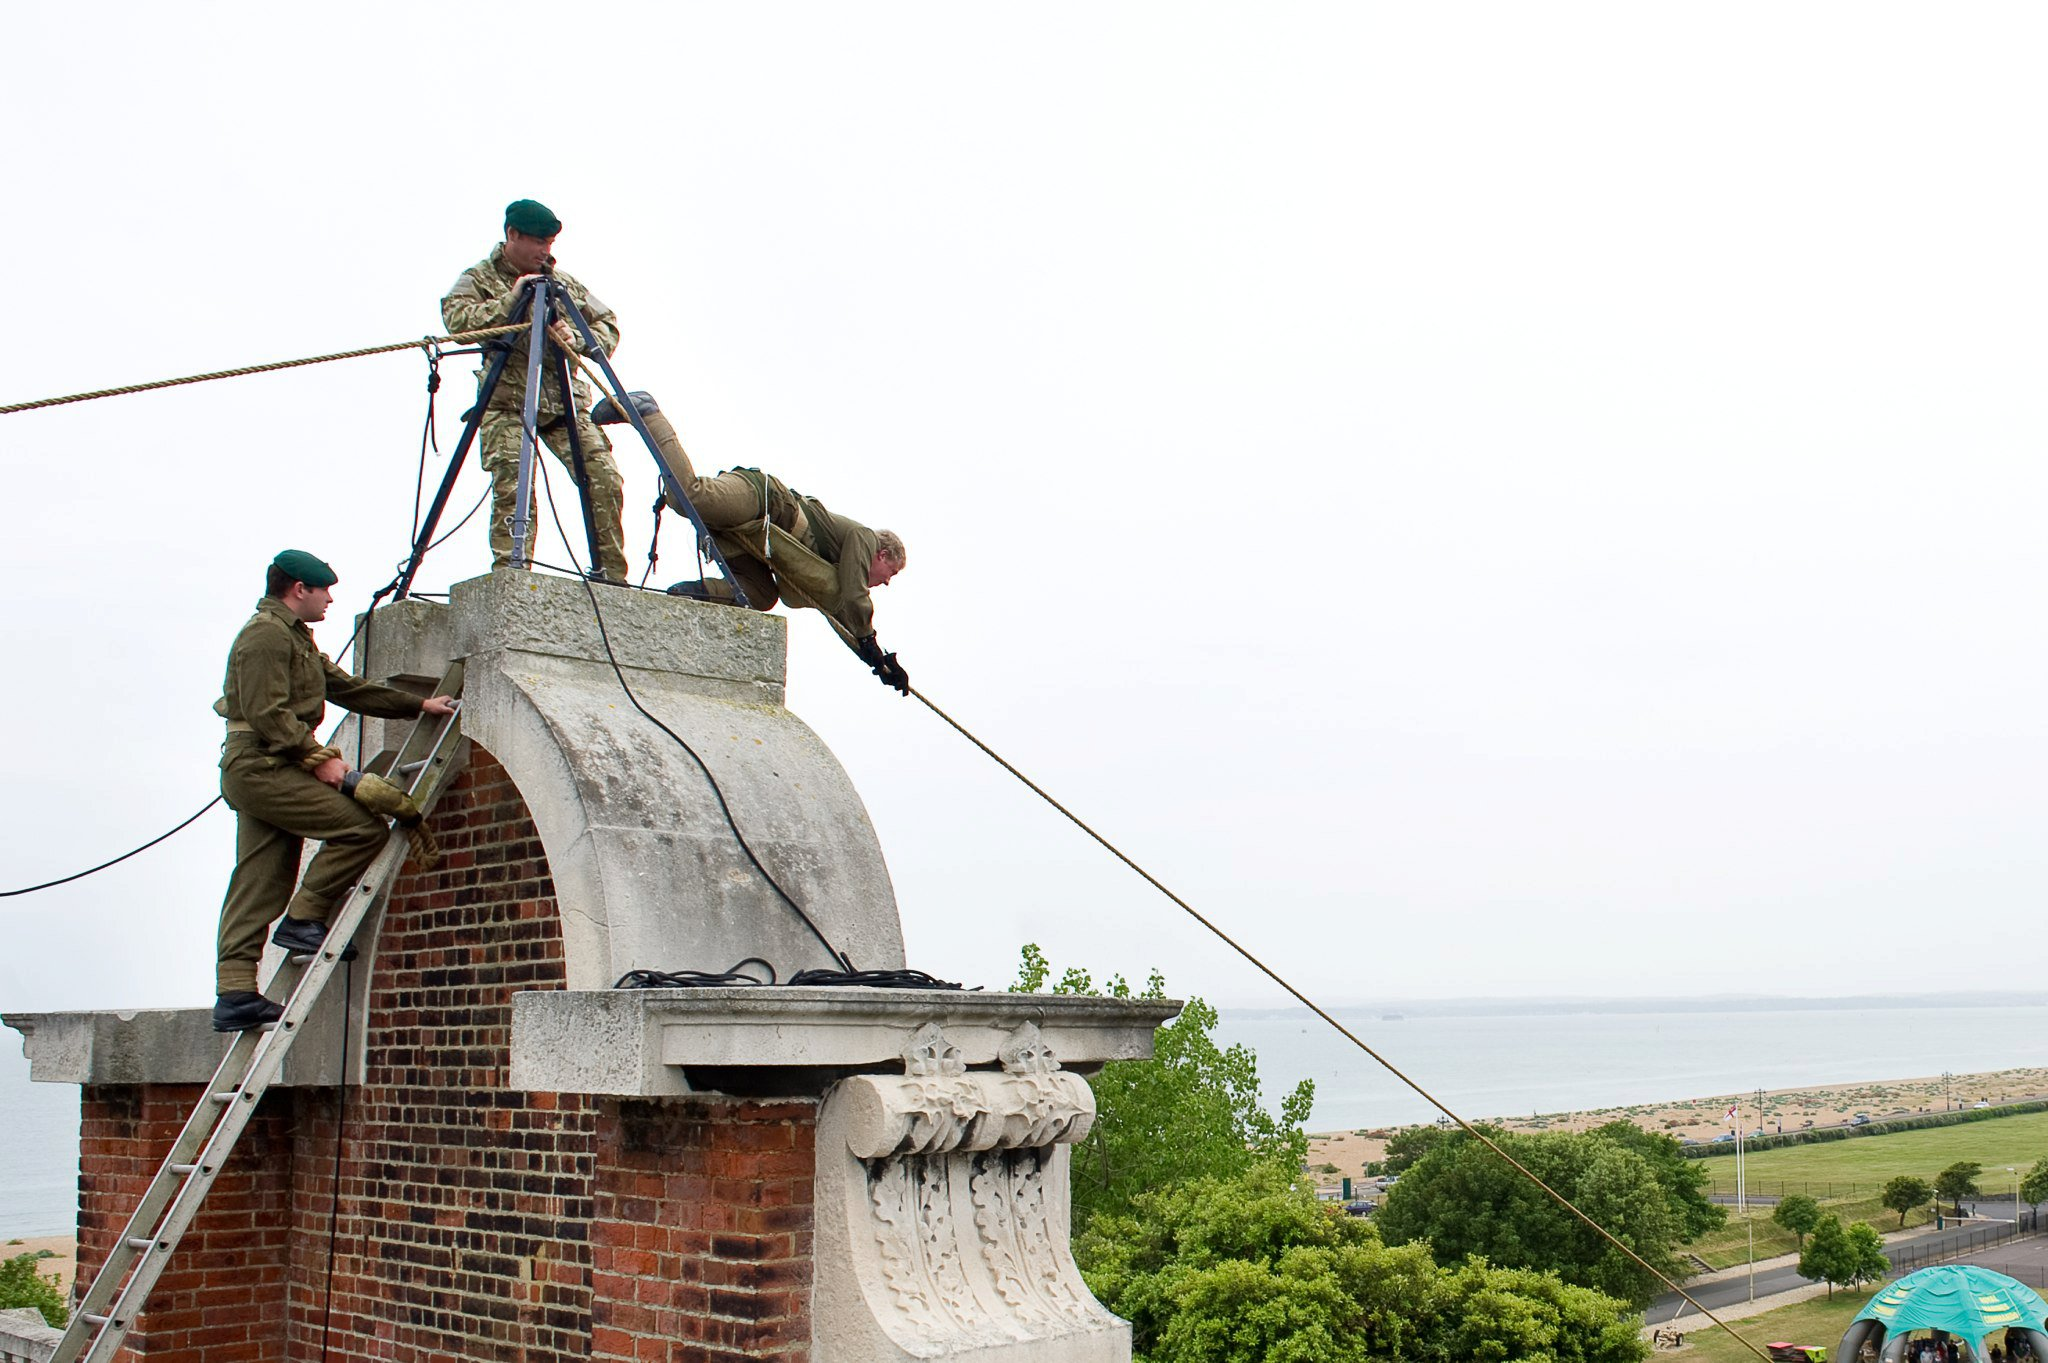 blind veterans uk zip line delivery chaity event with inaccessible solutions